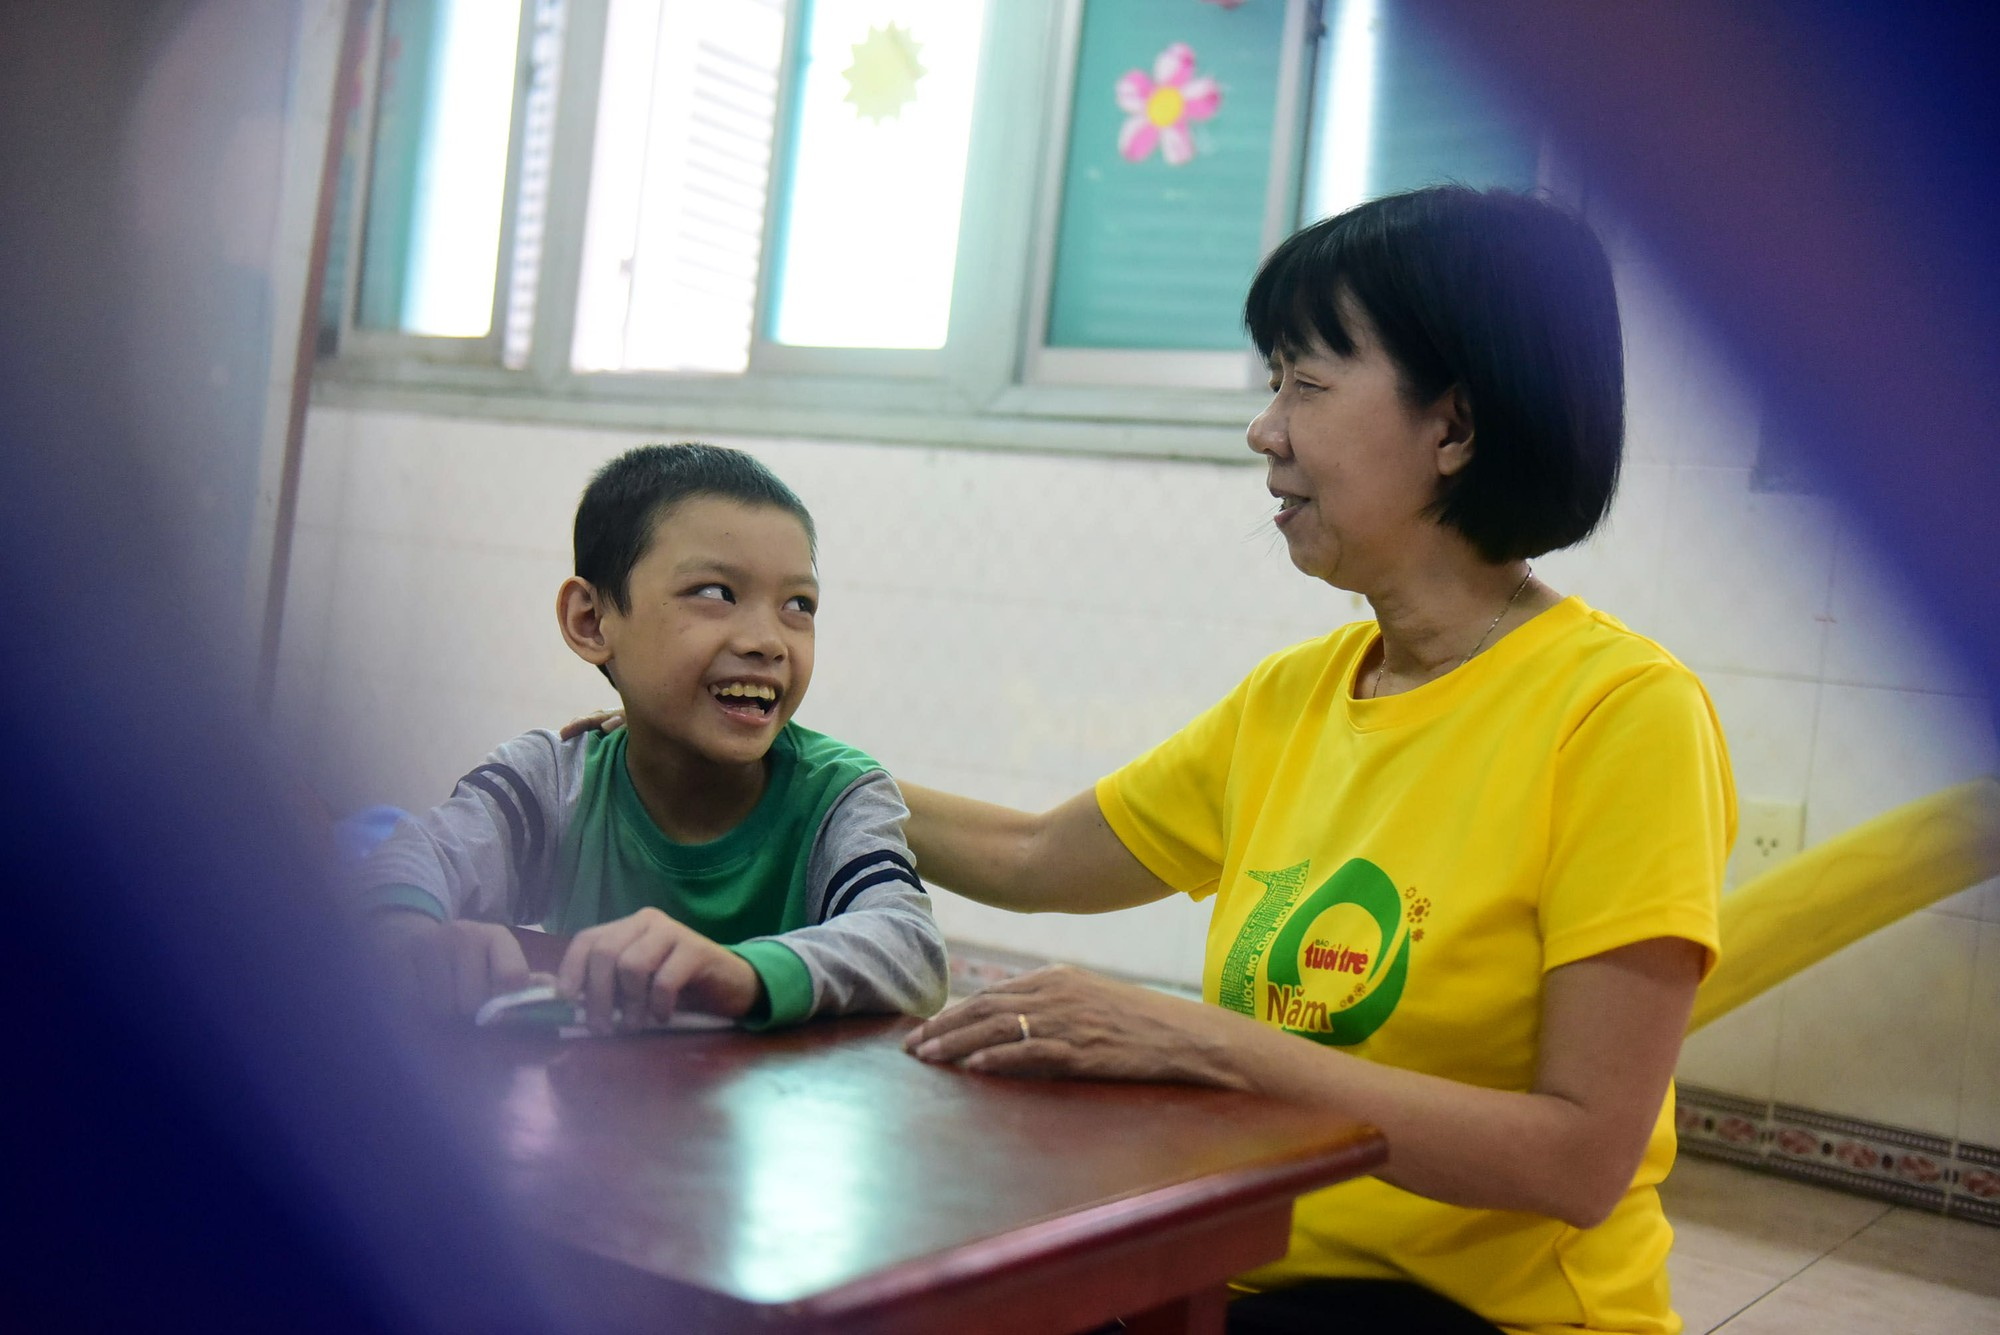 Dinh Thi Kim Phan sits with a child cancer patient at the Ho Chi Minh City Oncology Hospital in Ho Chi Minh City, Vietnam. Photo: Tuoi Tre